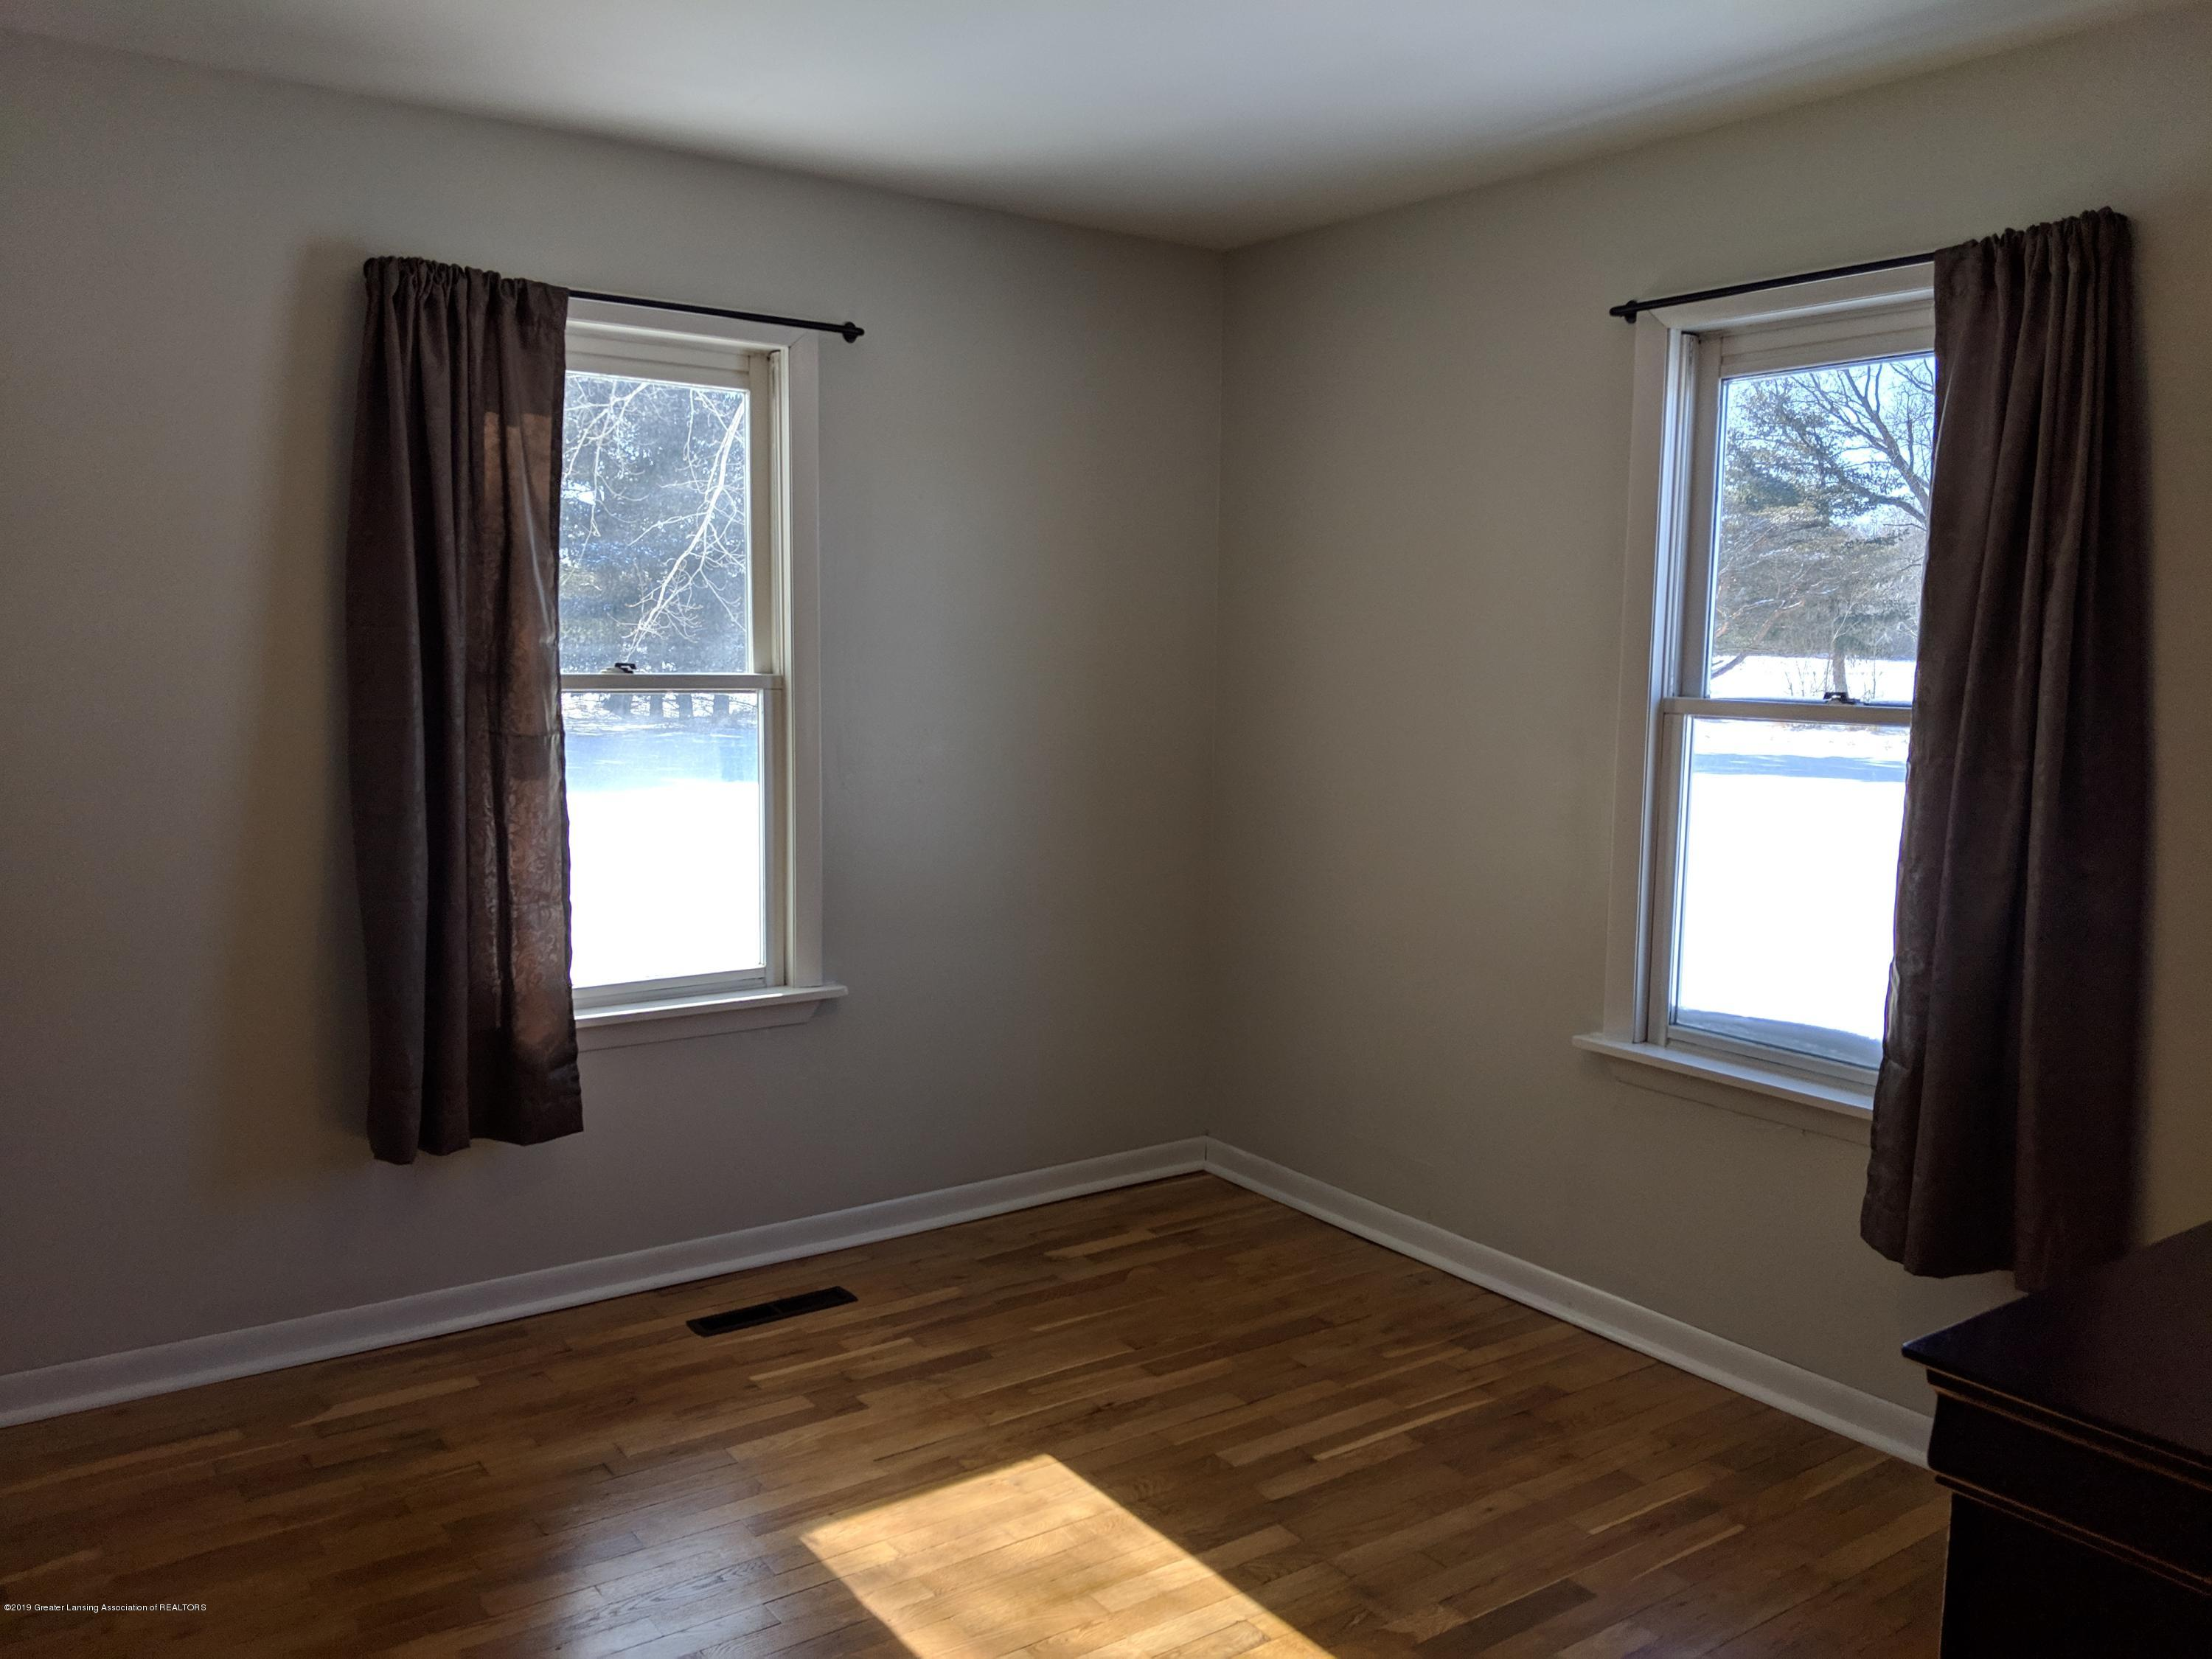 2240 E Howell Rd - Bedroom #2 - 16